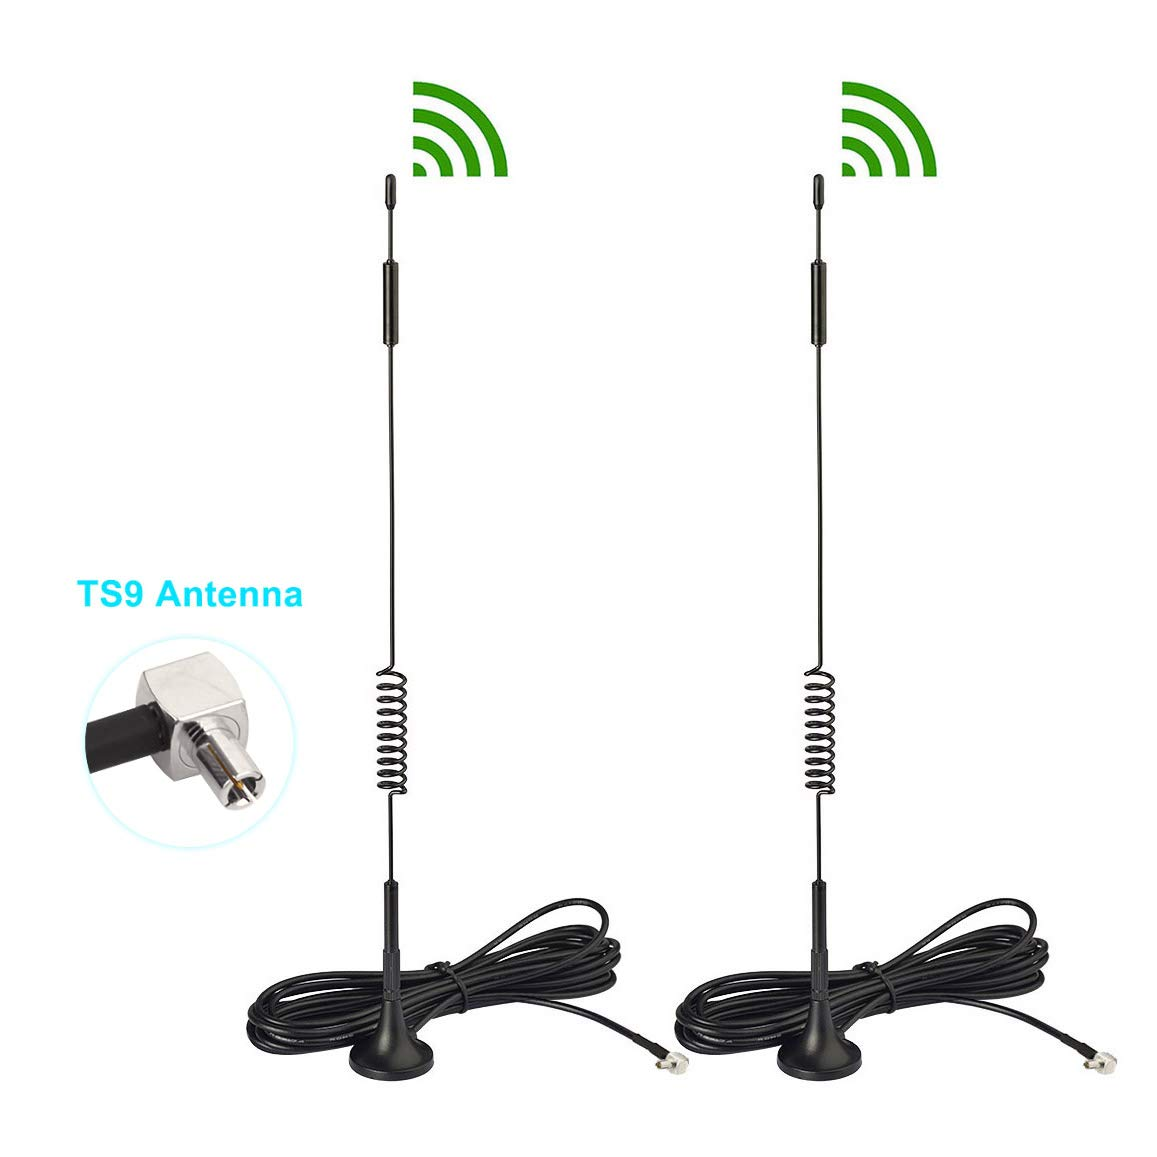 Bingfu 4G LTE 7dBi Magnetic Base External TS9 Antenna (2-Pack) Compatible with Verizon AT&T T-Mobile Sprint Netgear Huawei MiFi Mobile Hotspot Router USB Modem Jetpack AirCard AC791L AC815S AC770S by Bingfu